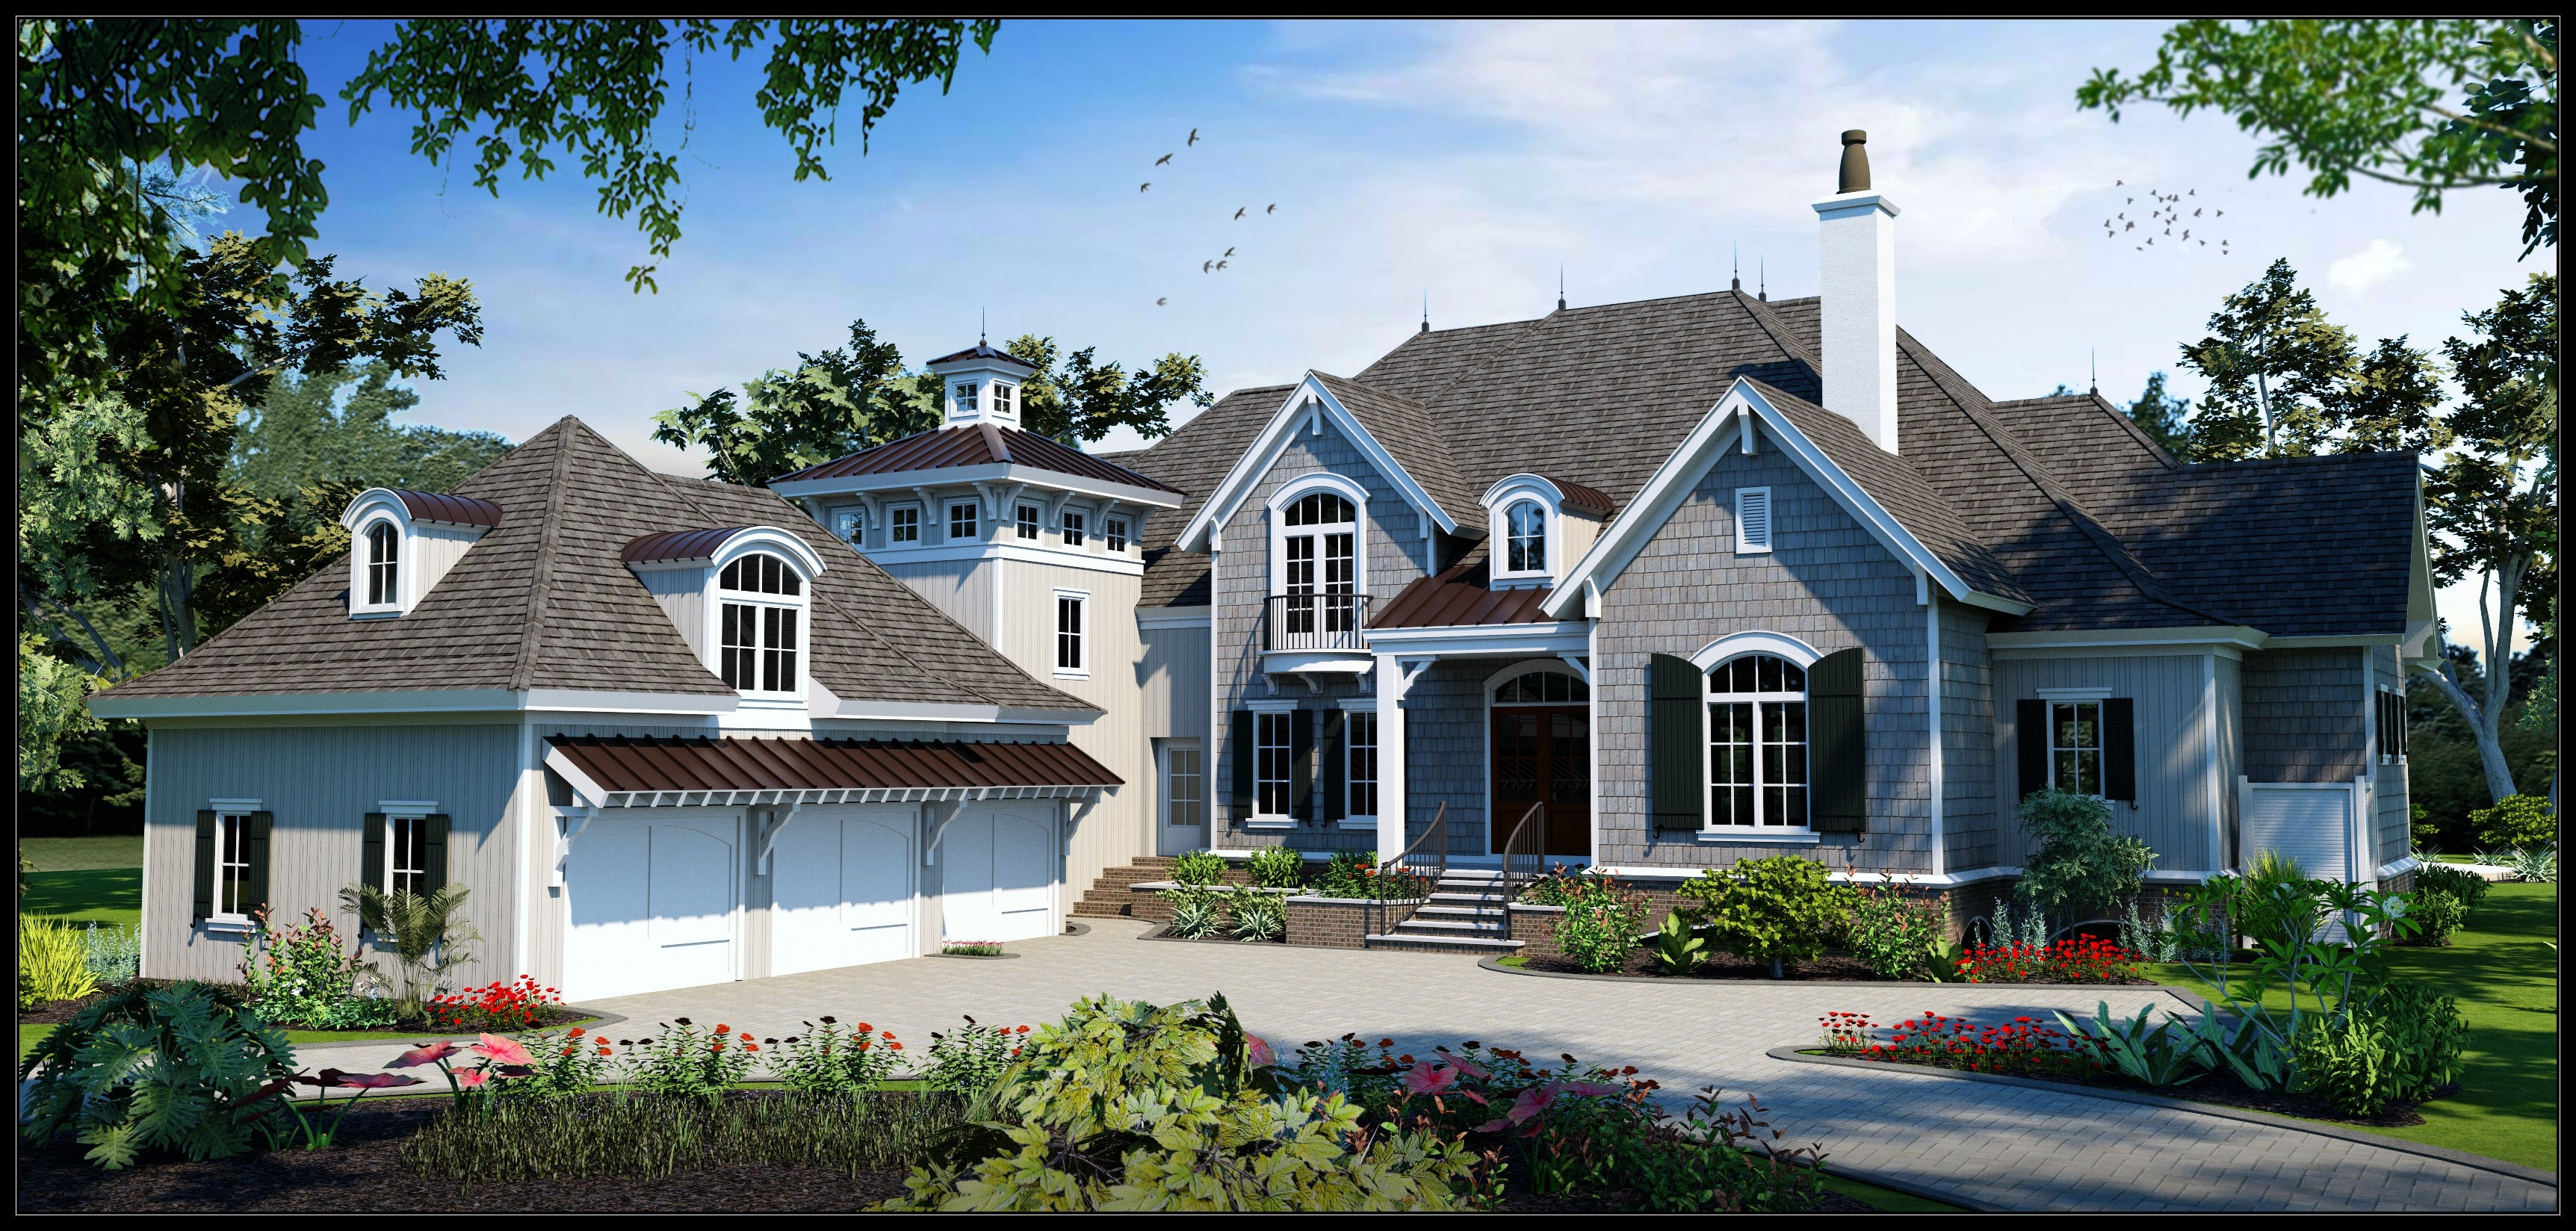 Arkiteknic custom homes lowcountry home magazine for Custom home builder magazine